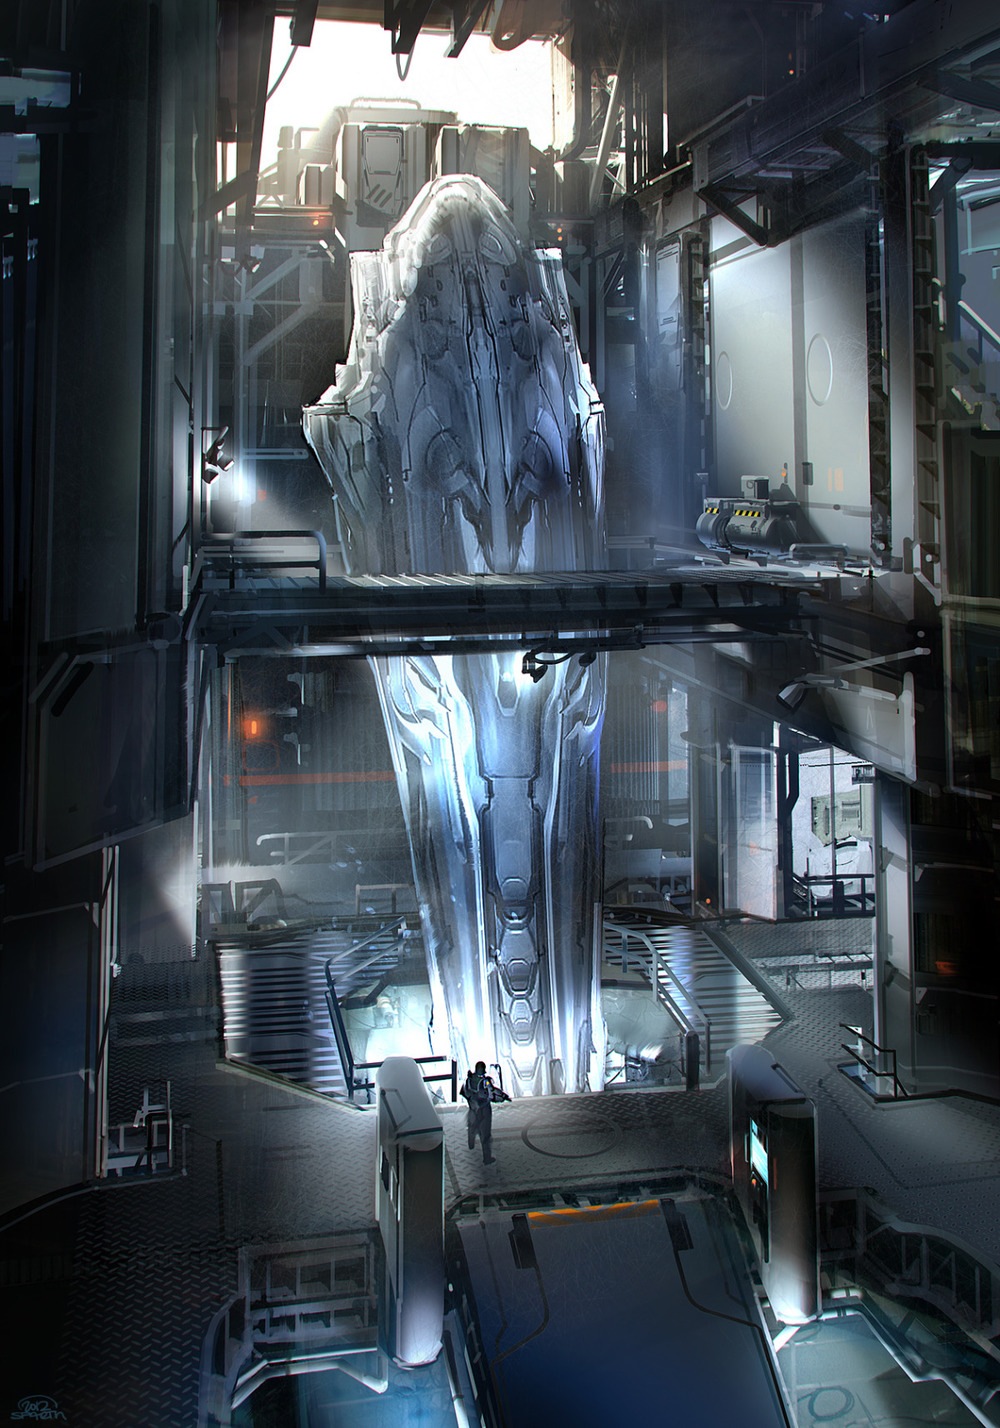 halo4_environment-multiplayer-01 (2).jpg